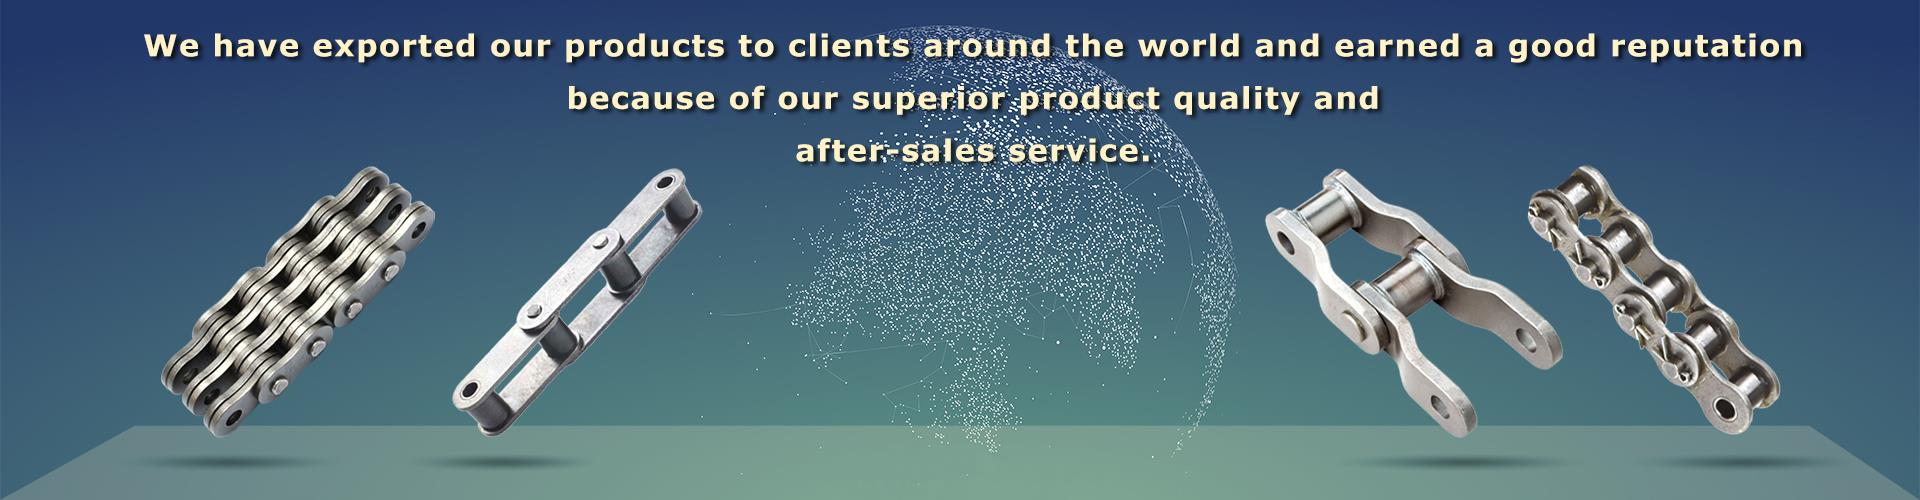 25b  made in China - replacement parts -  in Baixada Santista Brazil  35b 40b 50b 60b 80b 100b 120b 140b 160b ASA ANSI Standard Sprocket with ce certificate top quality low price